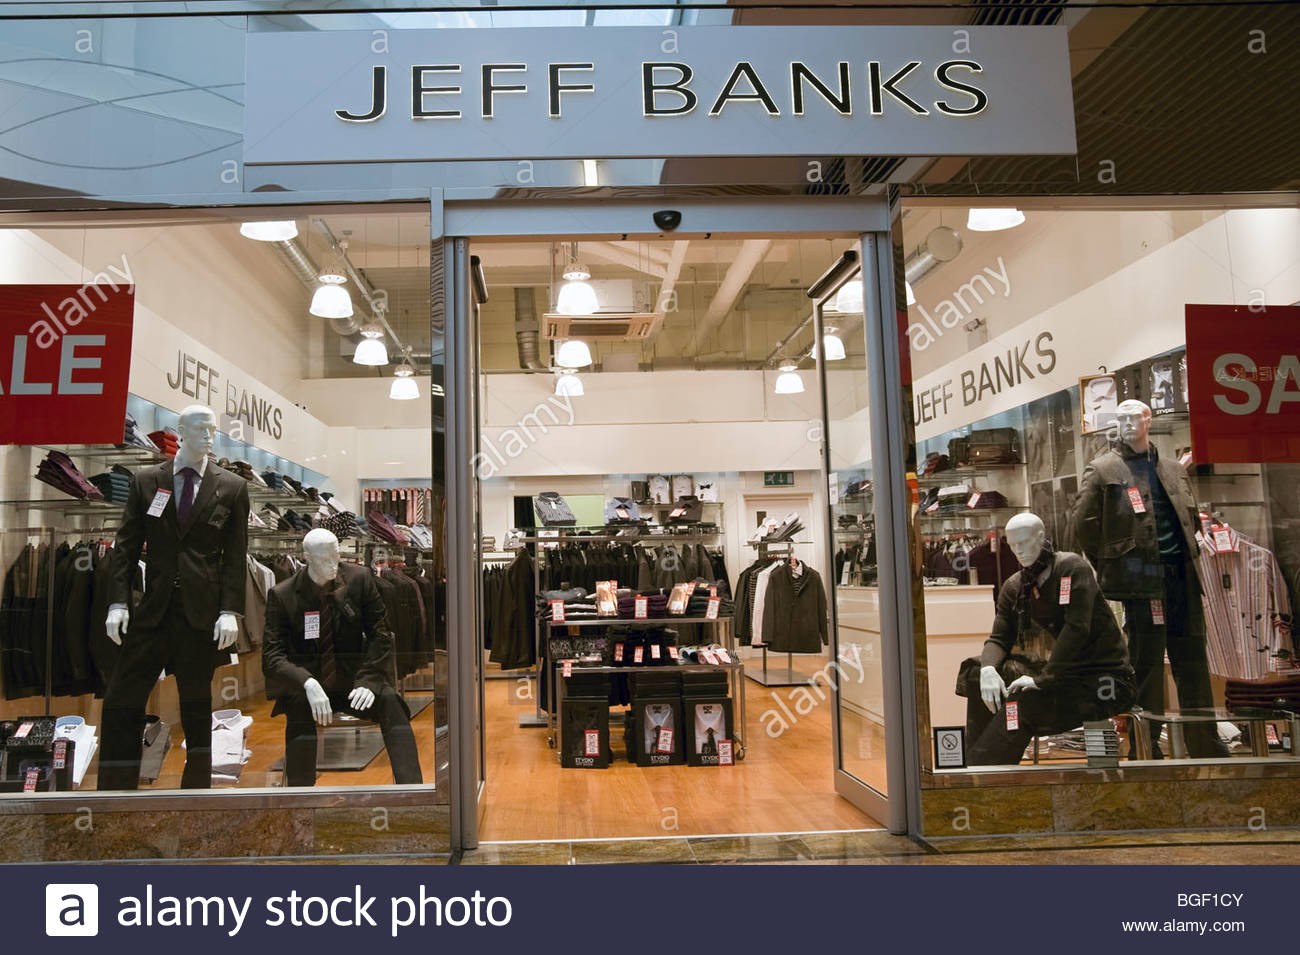 Designer Clothing Outlet Stores Jeff Banks clothing shop at